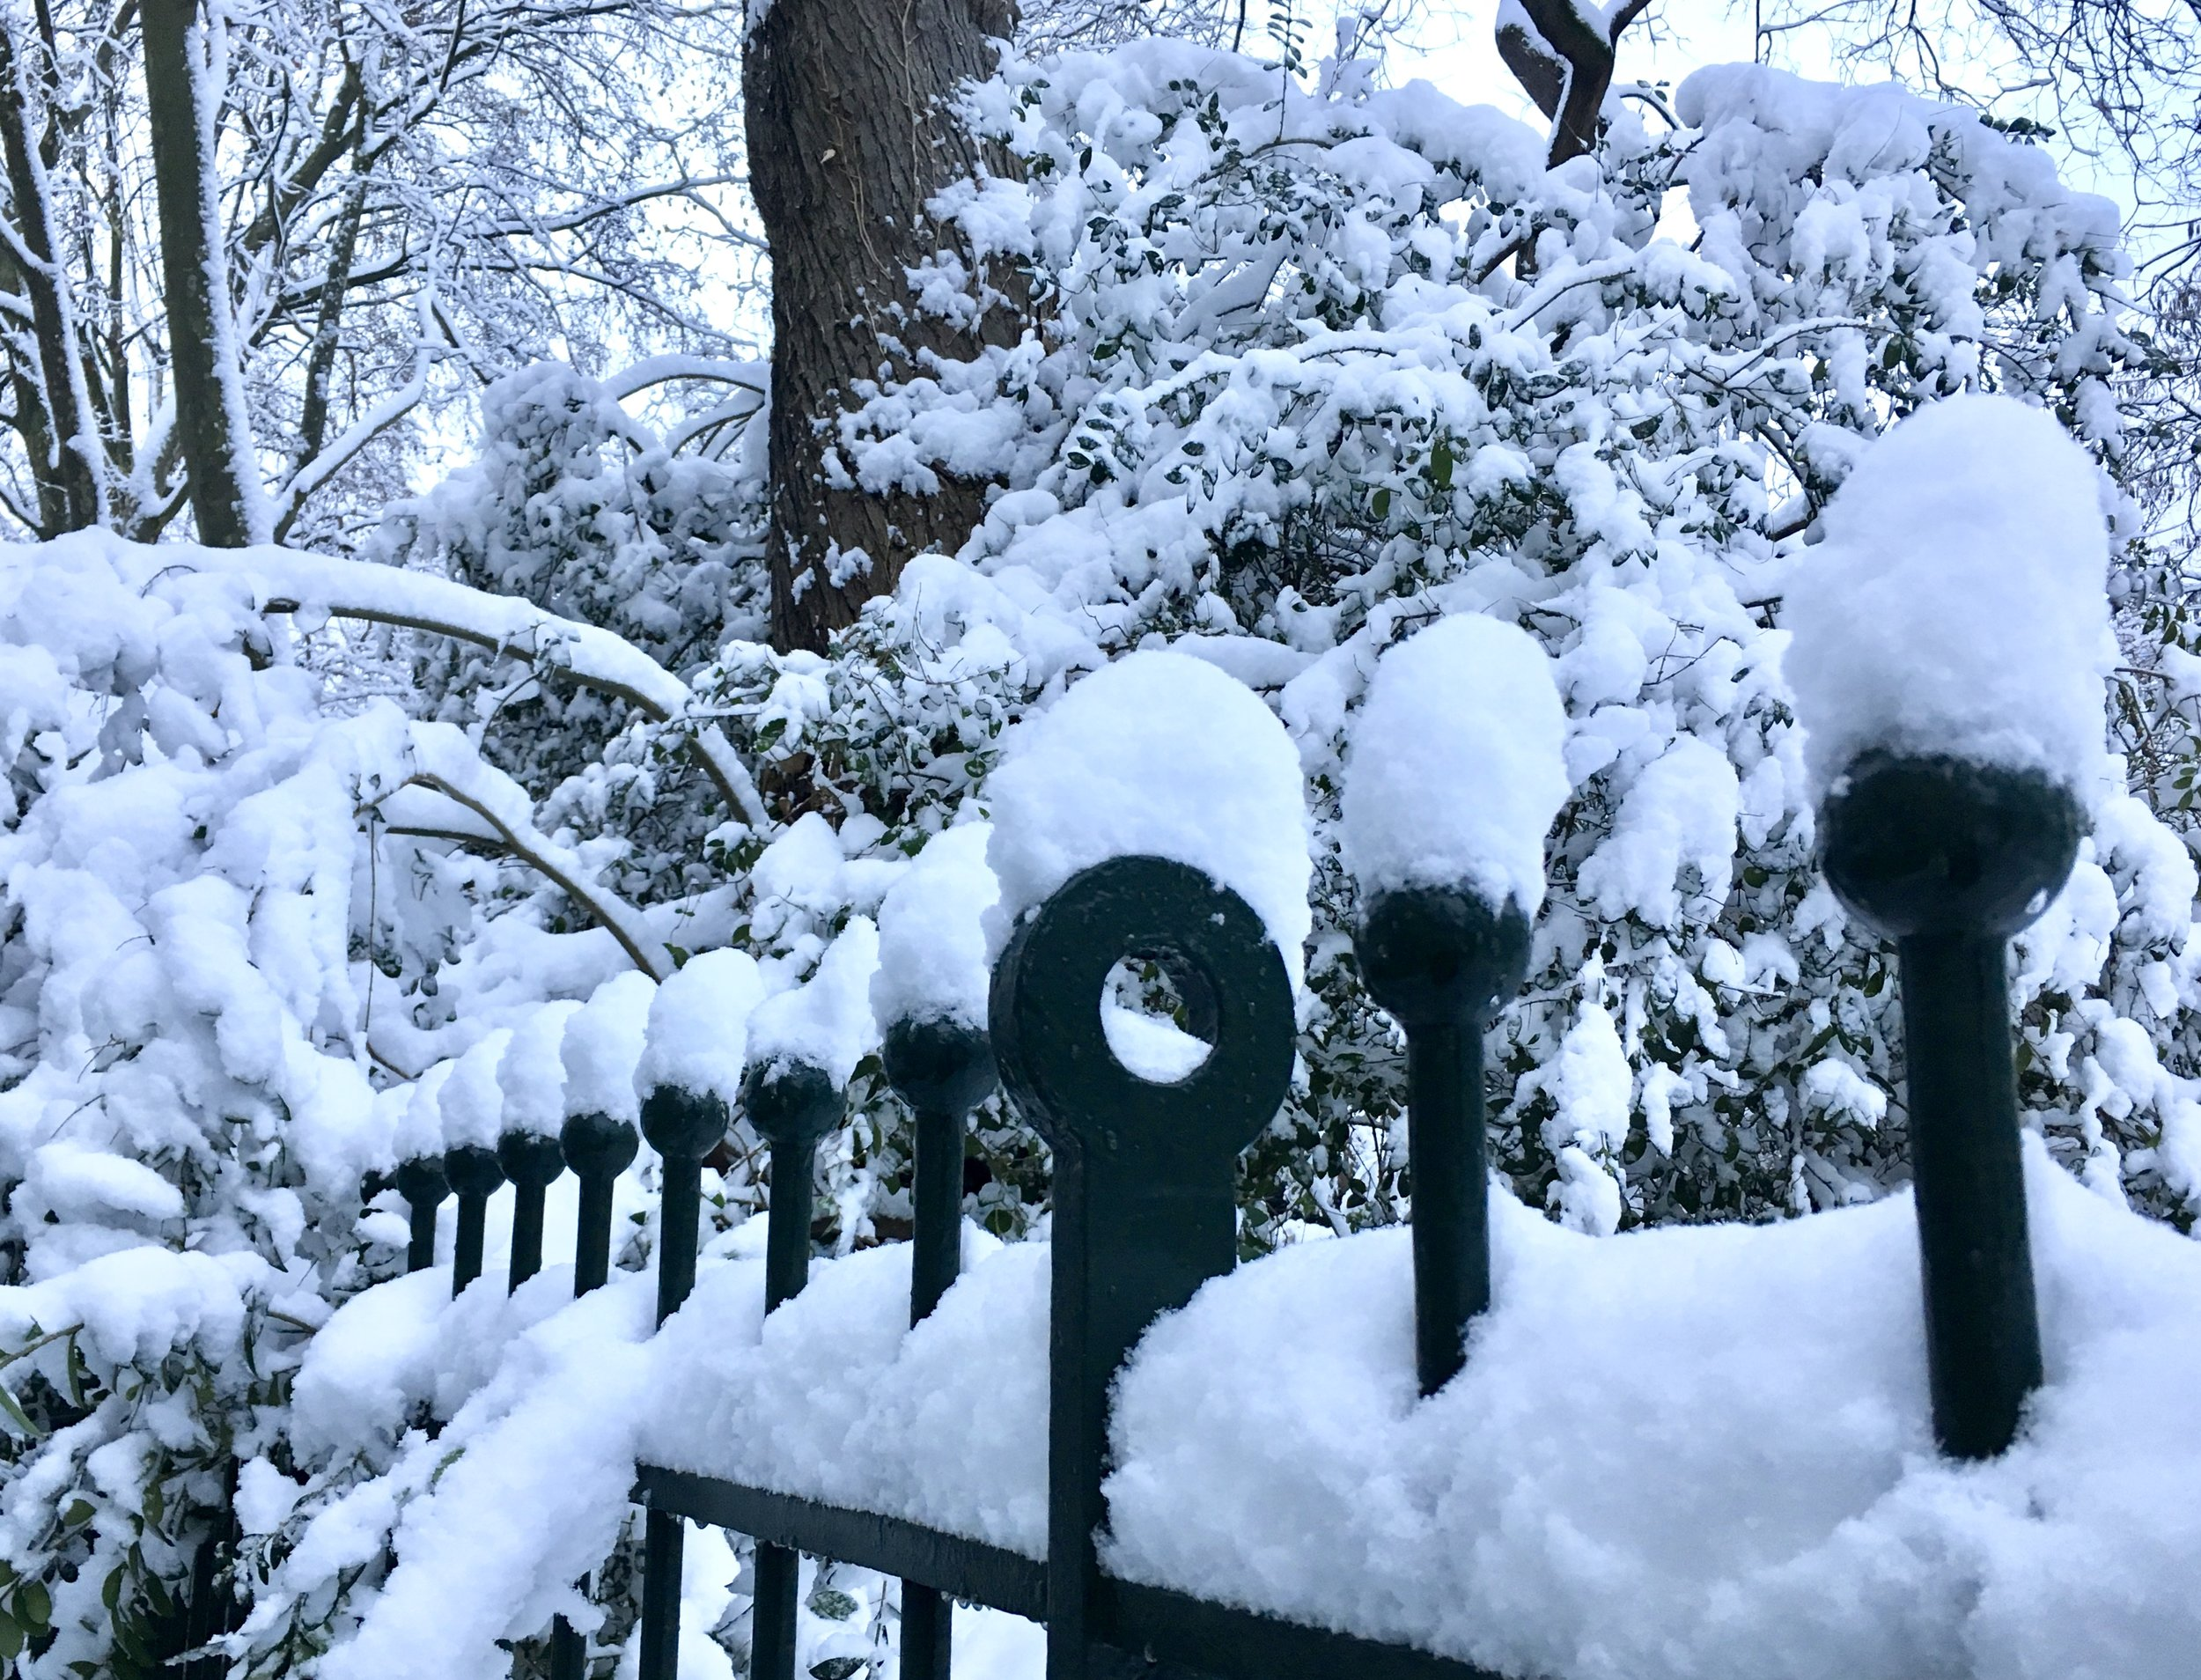 Snow-covered fence